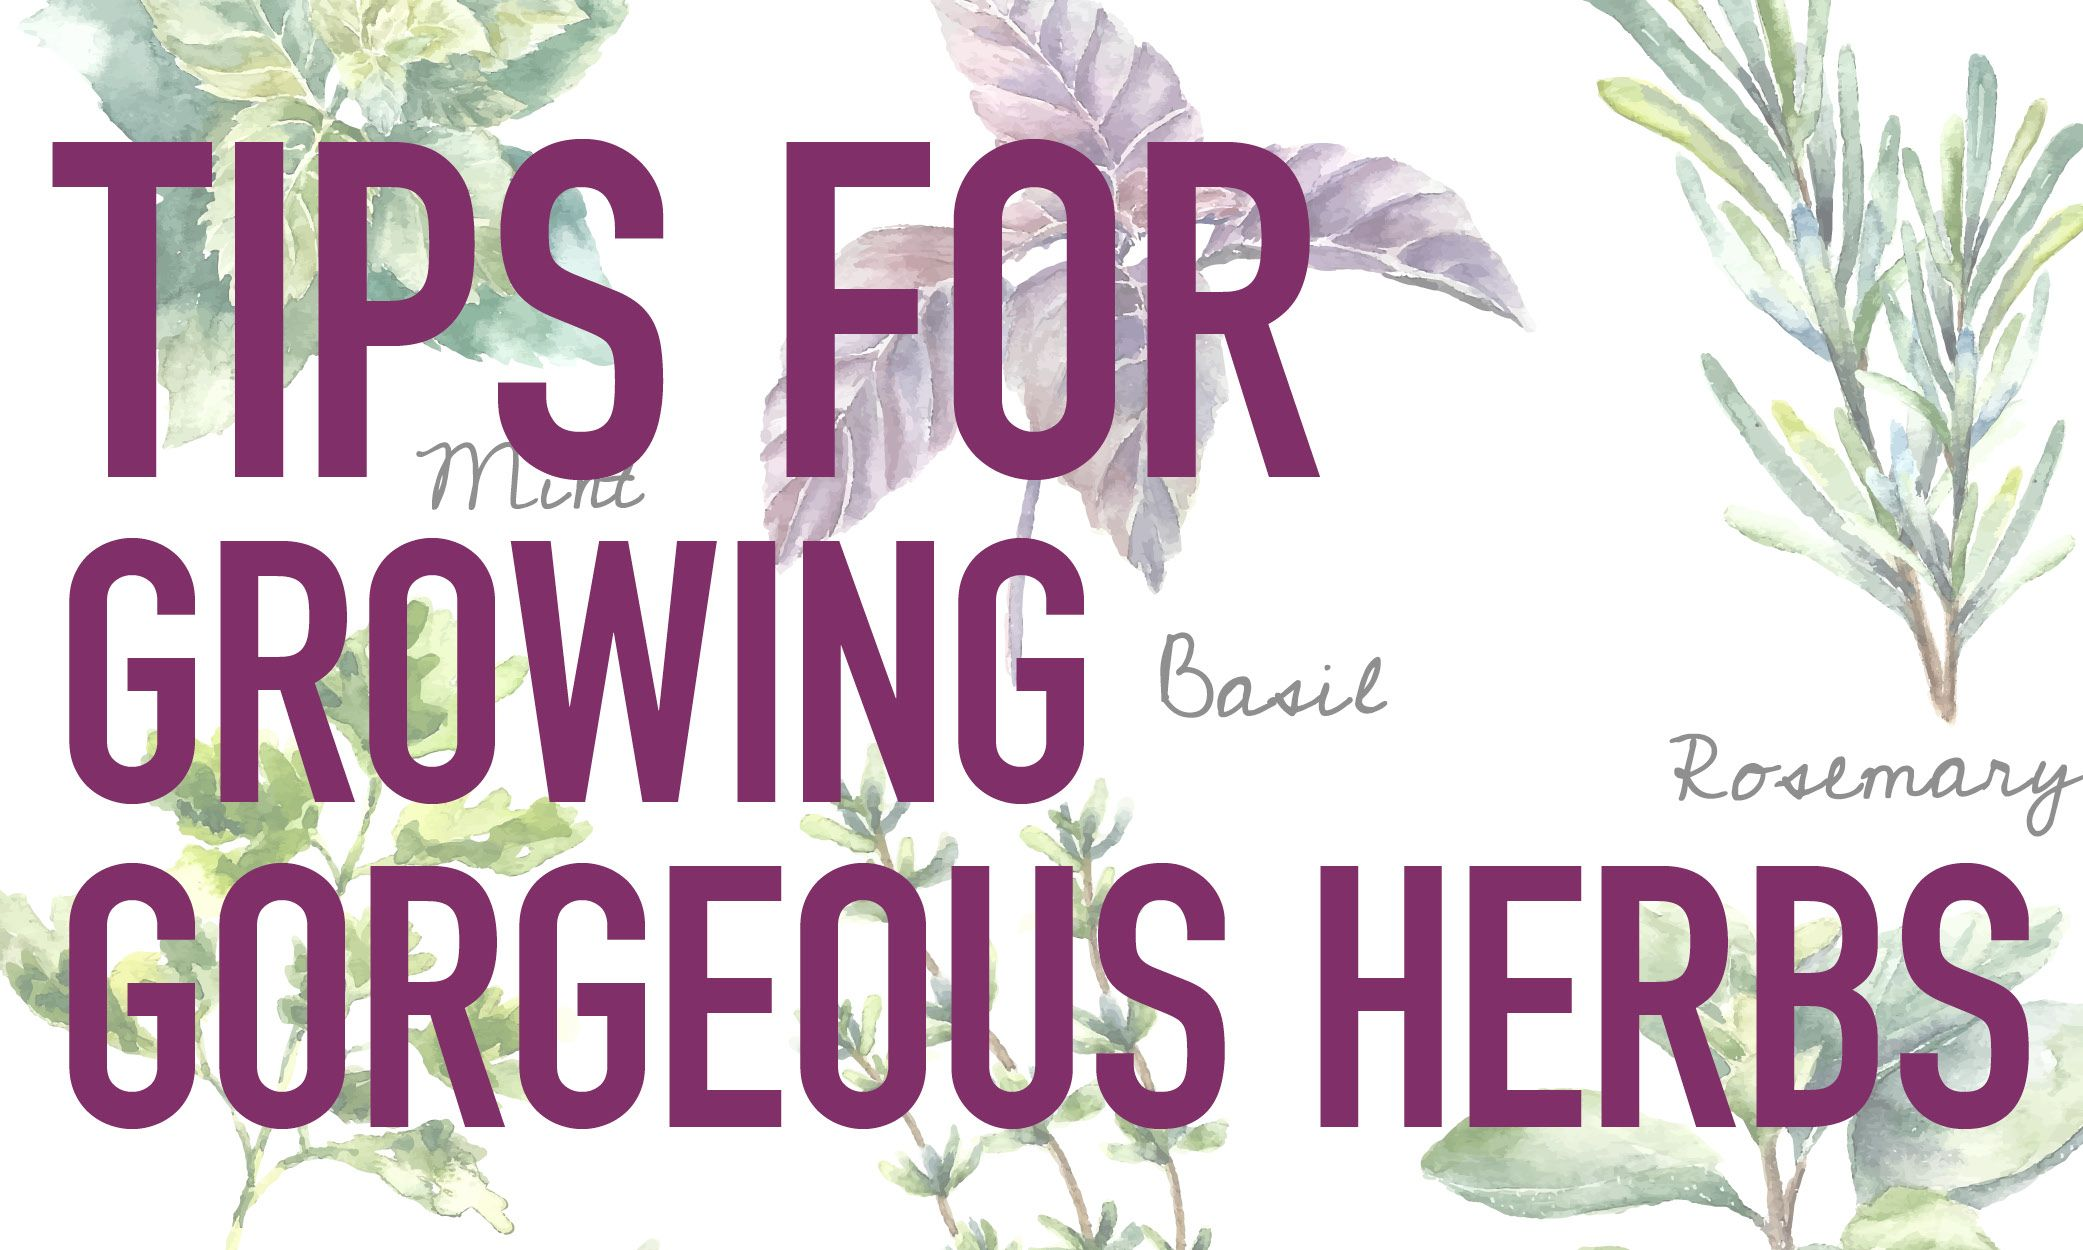 Whether it brings brightness to a beverage or spice to a sauté, herbs are invaluable, flavorful add-ins when it comes to healthy cooking. Find tips on growing these glorious garden herbs in the new issue of Loving Outdoor Living. http://www.lovingoutdoorliving.com/